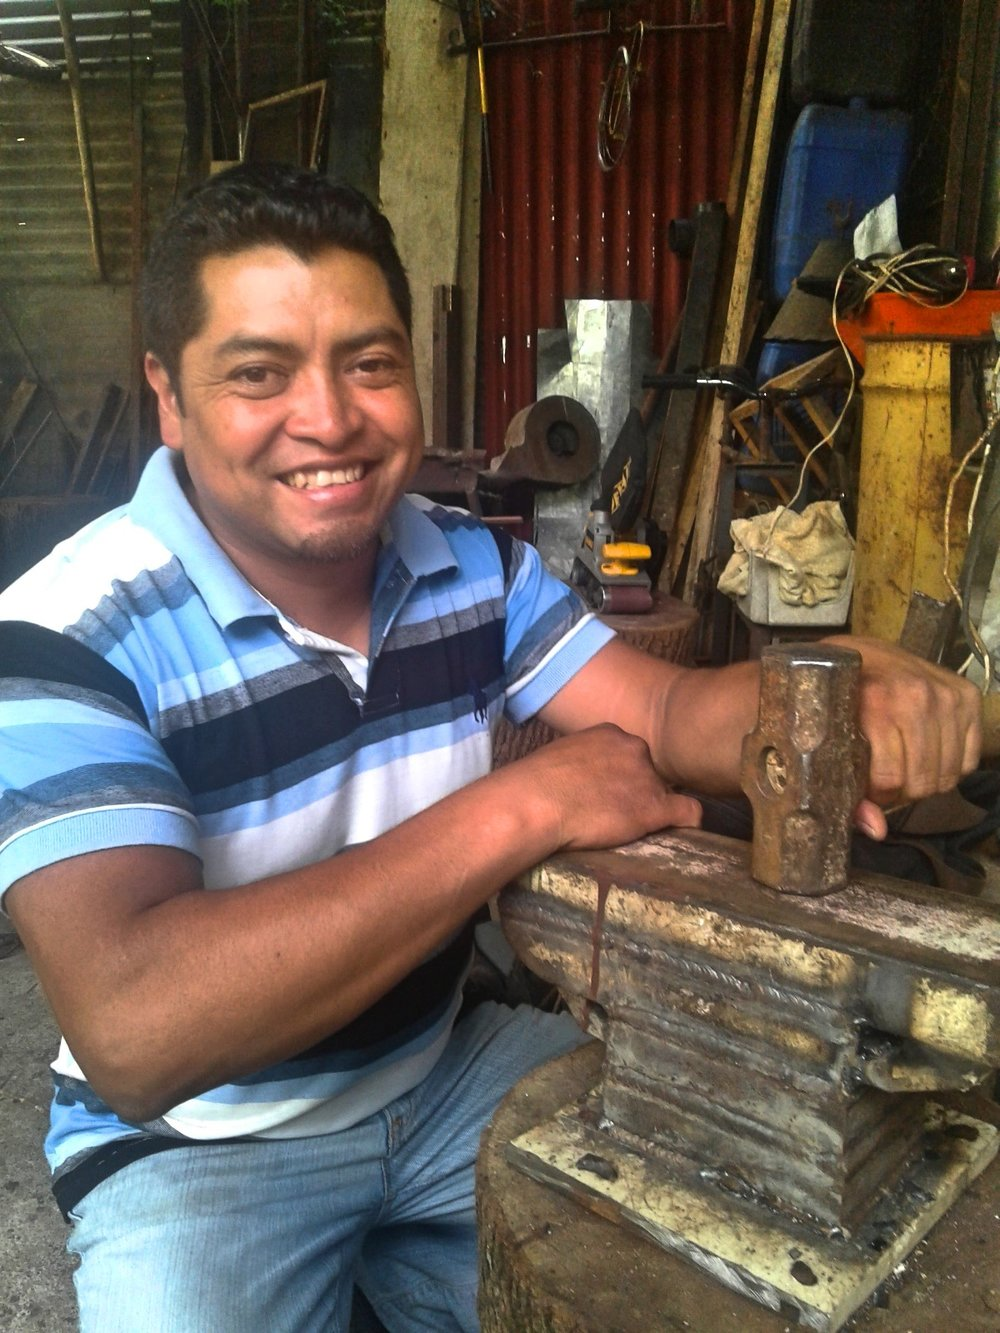 Pictured: Carlos with an anvil he purchased with funds from his recent Spartan Global loan.